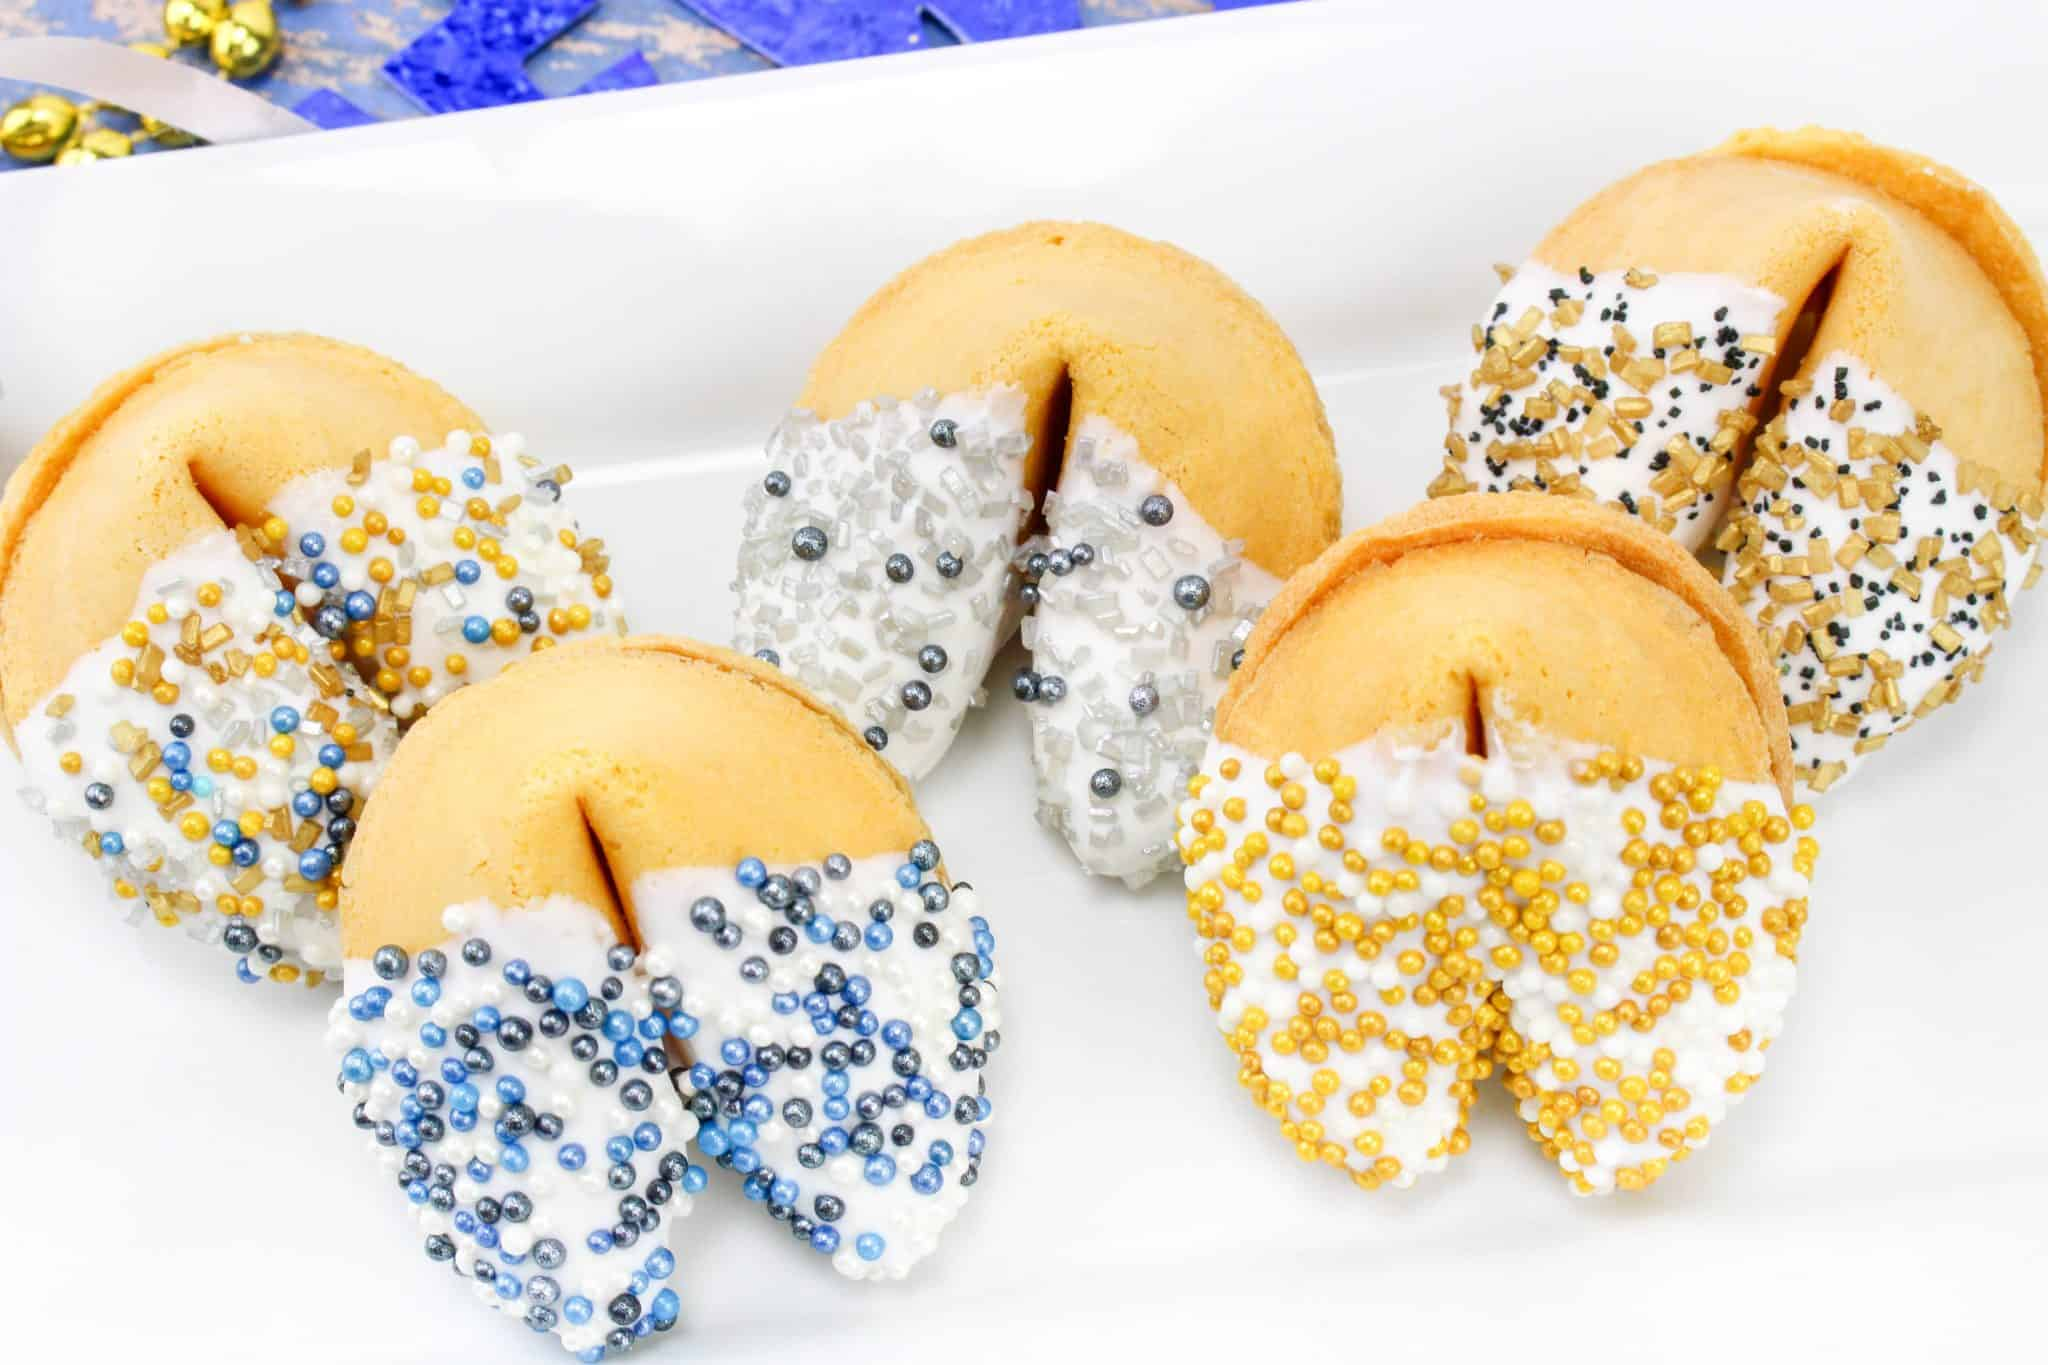 white chocolate dipped fortune cookies for New Years Eve party shown displayed on a long white platter.